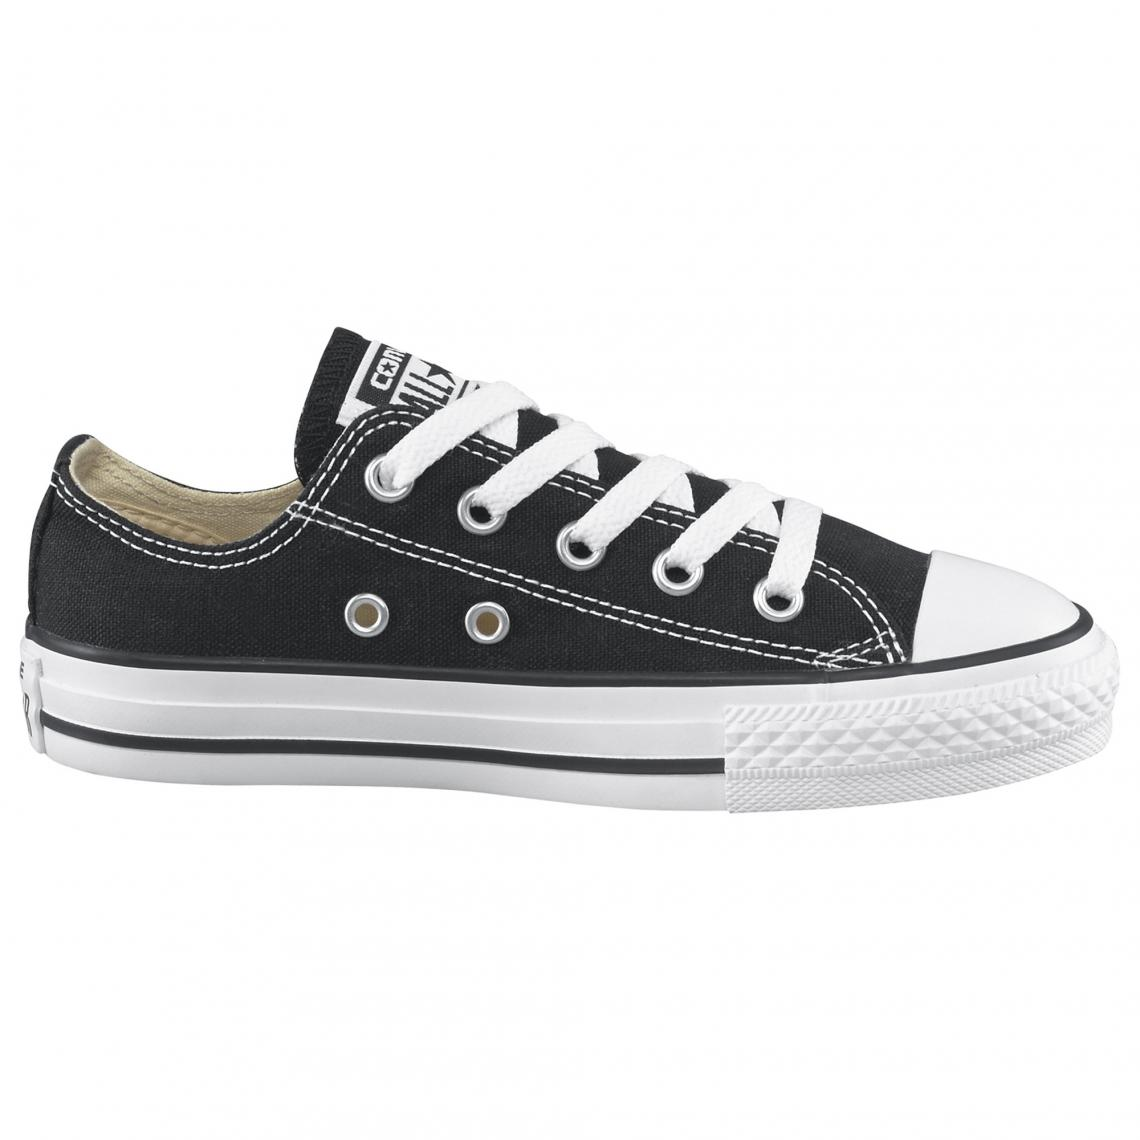 7ad93a31f37 Converse Chuck Taylor All Star baskets basses en toile enfant - Noir ...